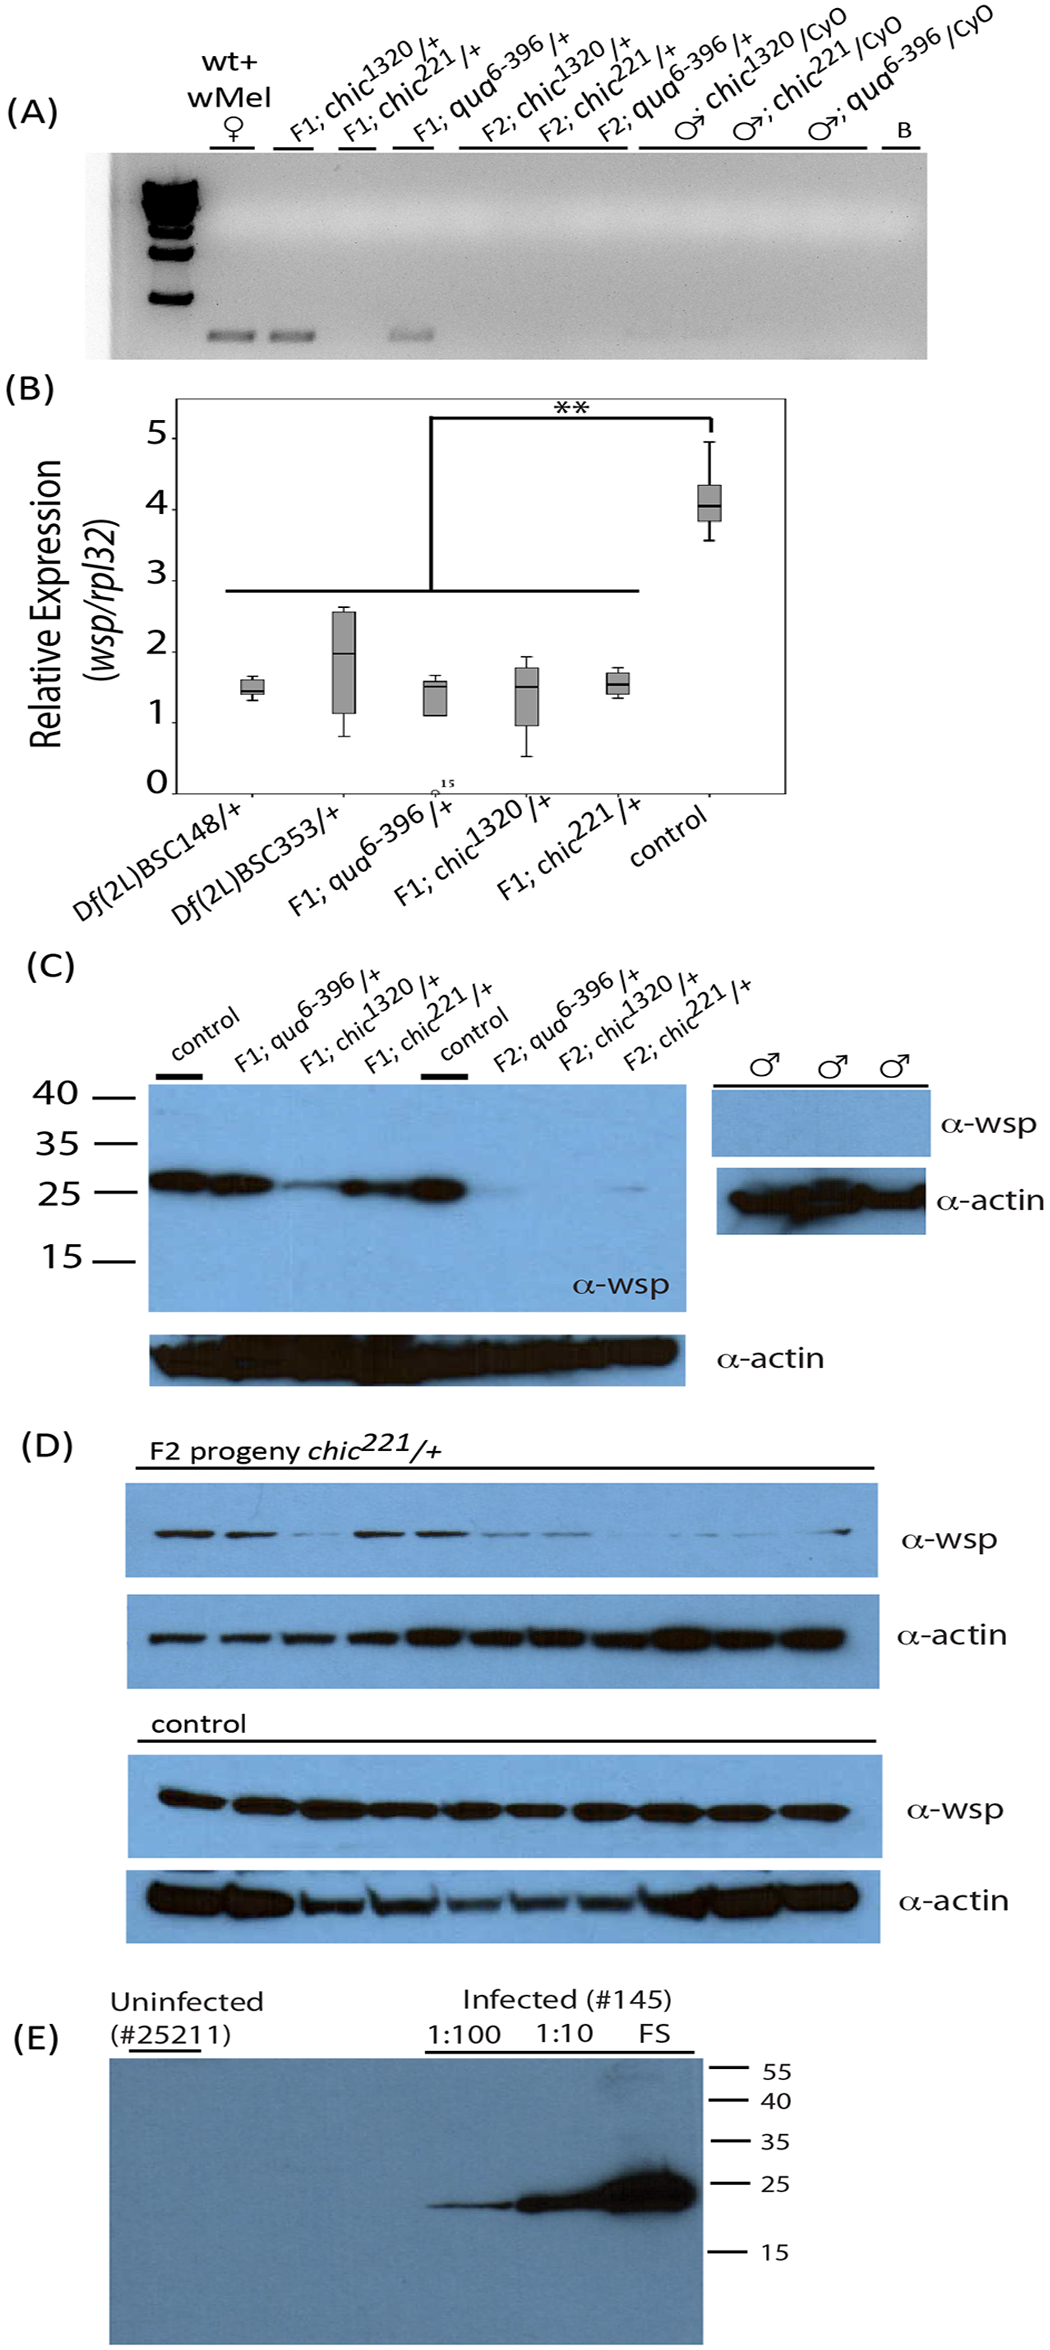 Presence of <i>Wolbachia</i> within various <i>Drosophila melanogaster</i> genotypes and their offspring assessed using polymerase chain reaction (A) and qPCR targeting the <i>wsp</i> gene on individual flies (B) or Western blot using antibodies against Wsp on both pooled fly lysates (C) and individual flies (D).